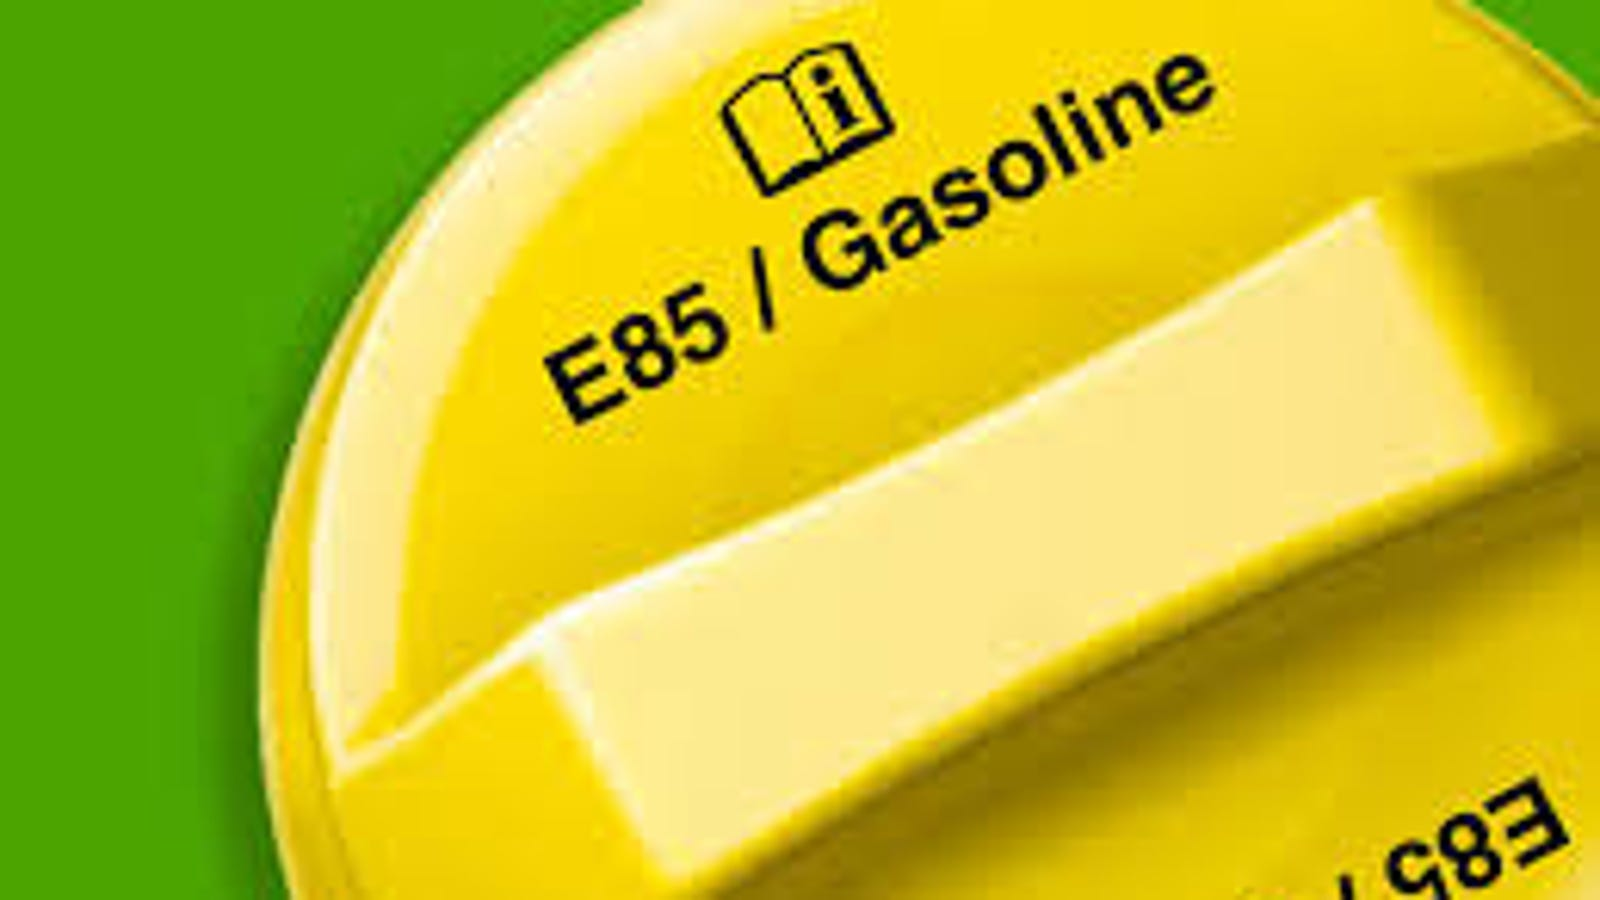 E85 FlexFuel engines - what is the difference?